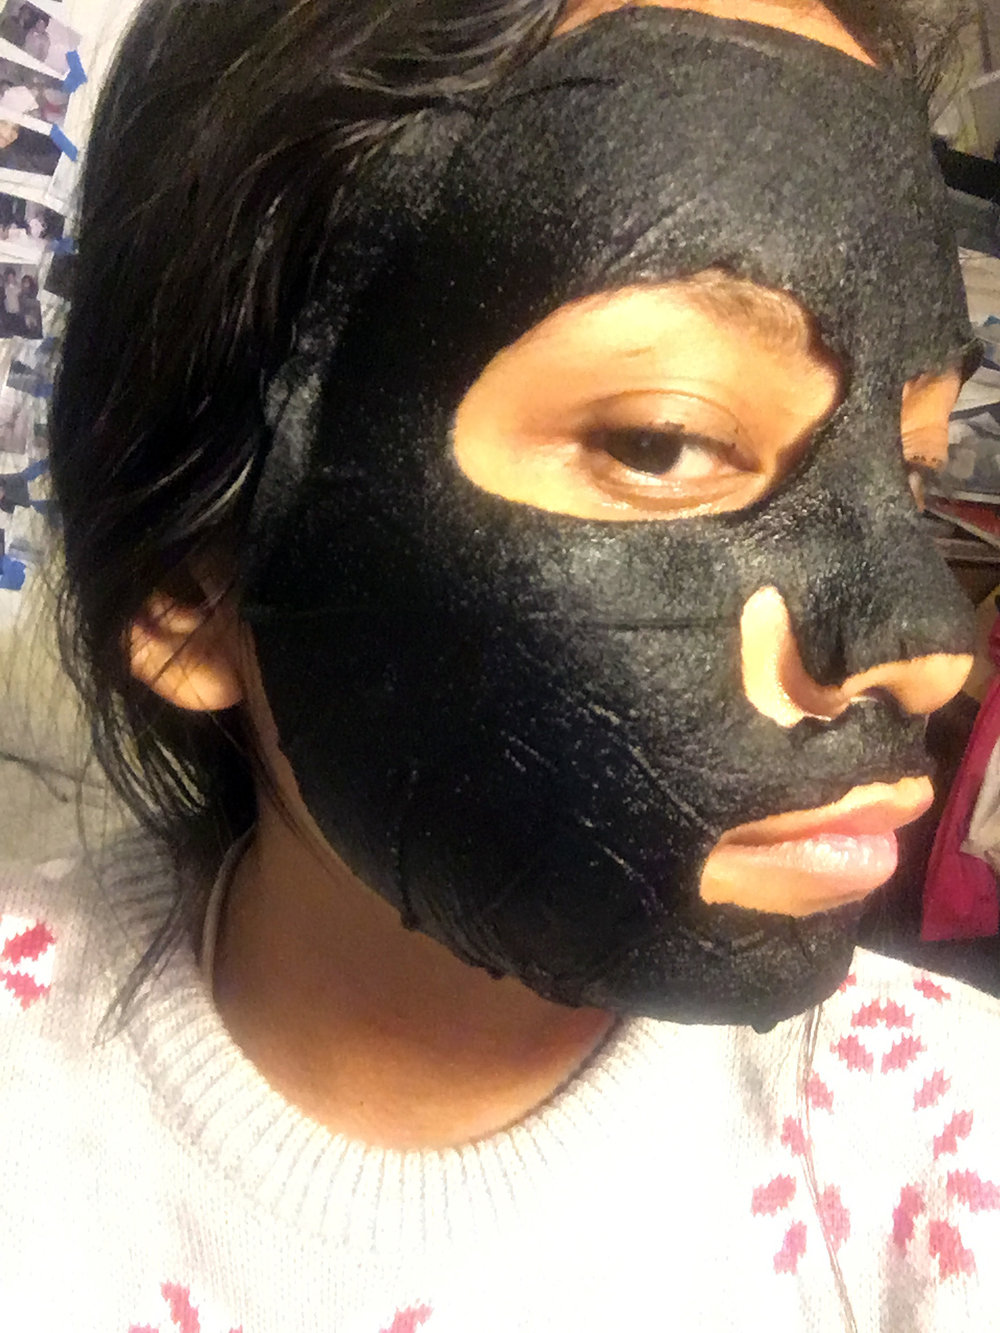 Ipsy-February-Review-Soo-AE-Sheet-Mask-Duo-Purifying-Black-Charcoal-Mask-LINDATENCHITRAN-2-1932x2576.jpg